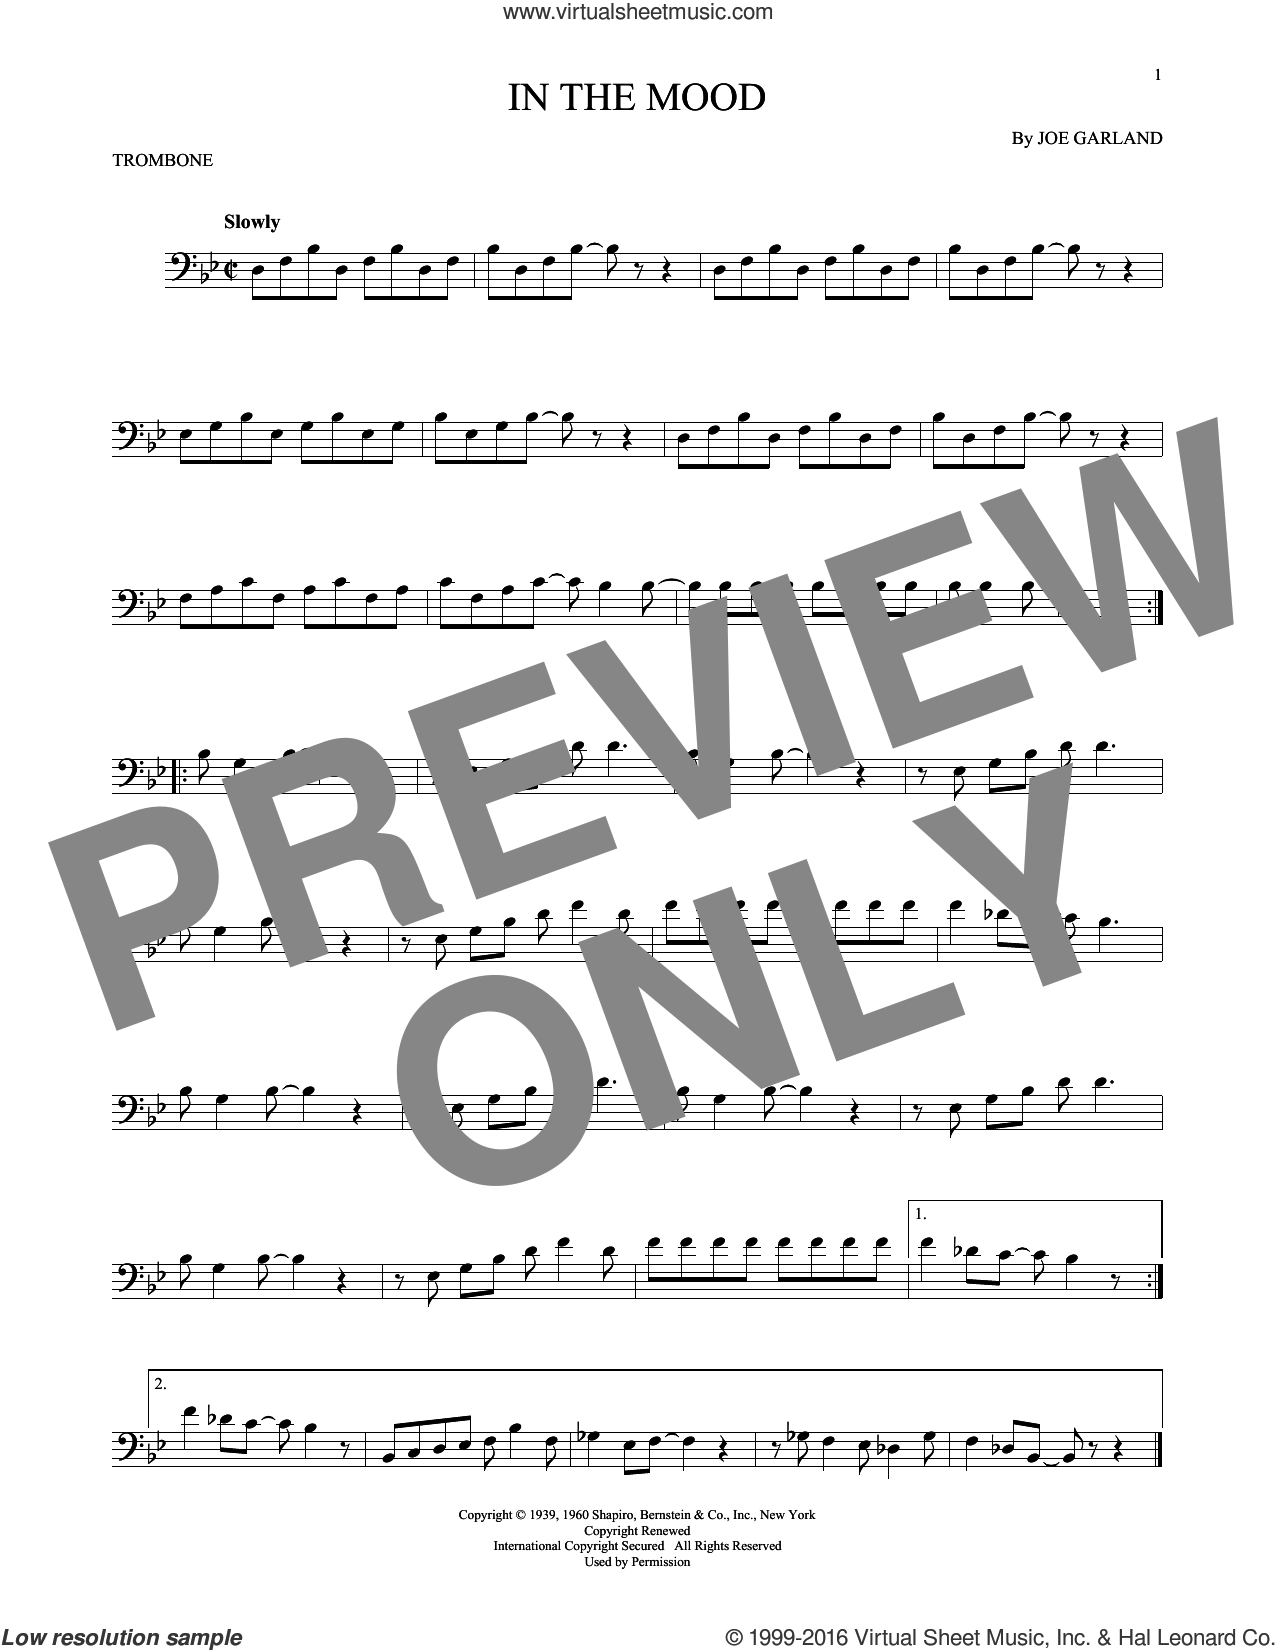 In The Mood sheet music for trombone solo by Joe Garland and Glenn Miller & His Orchestra, intermediate skill level